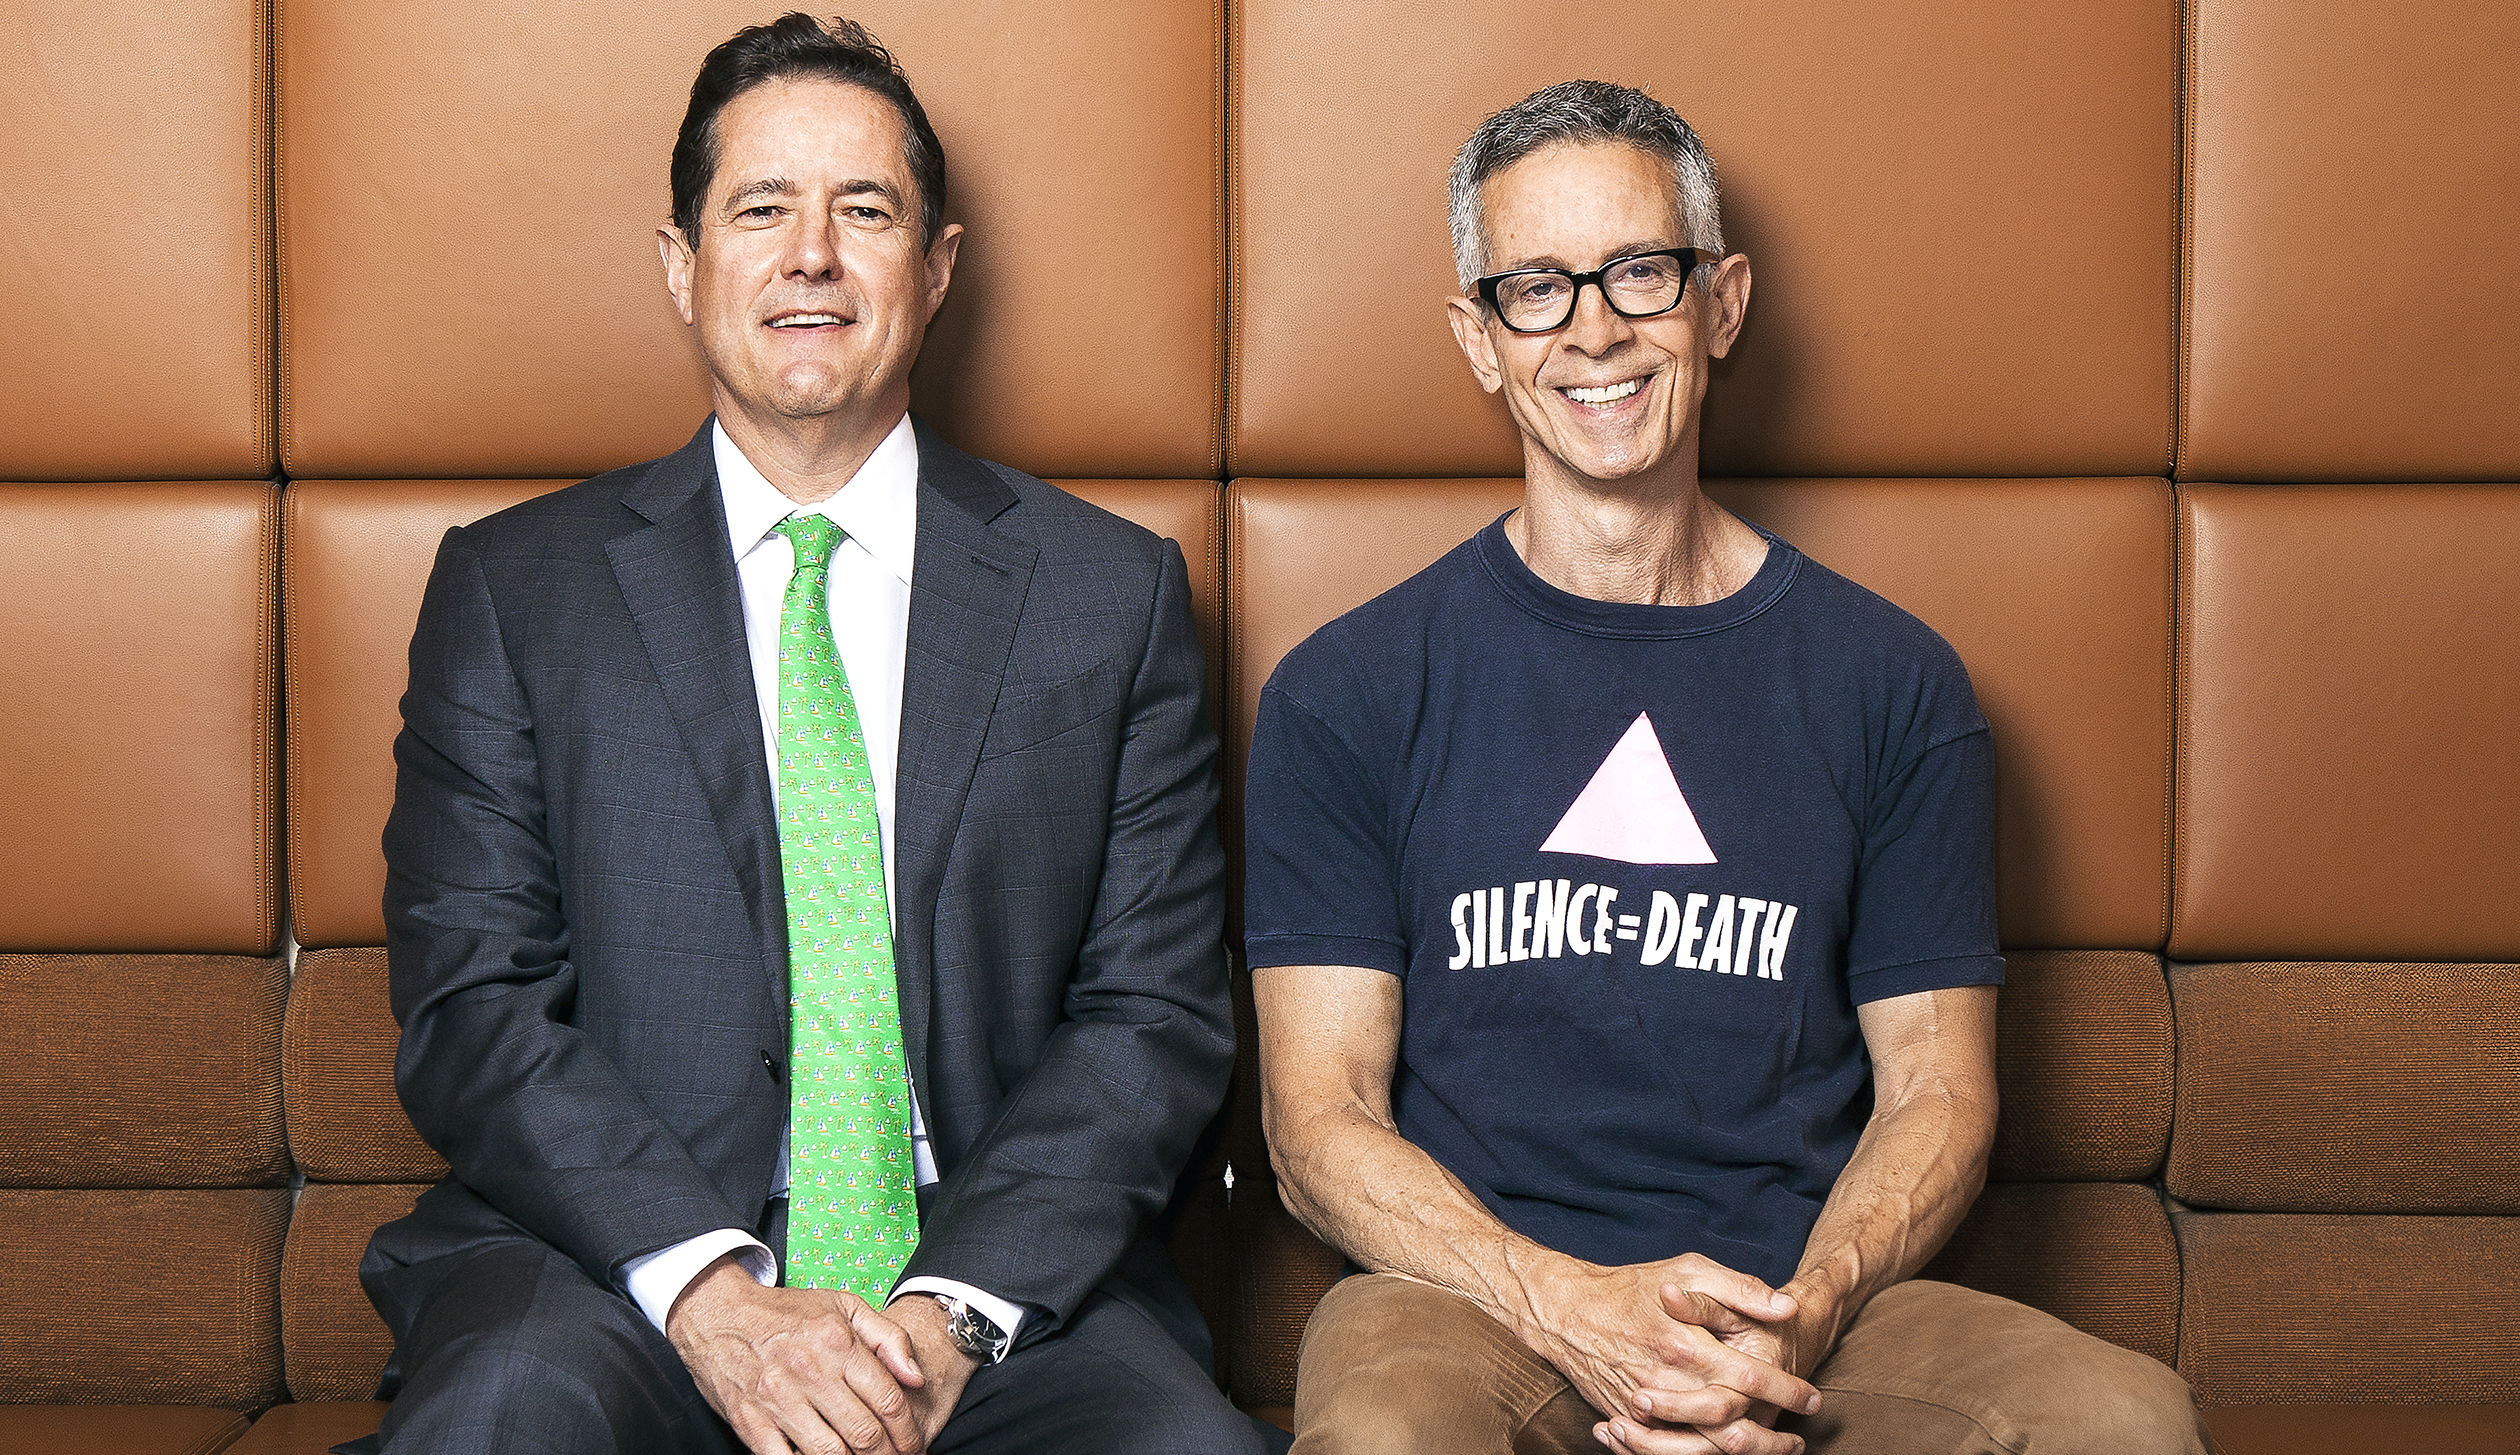 Barclays CEO Jes Staley (left) became a supporter of his brother Peter's mission.